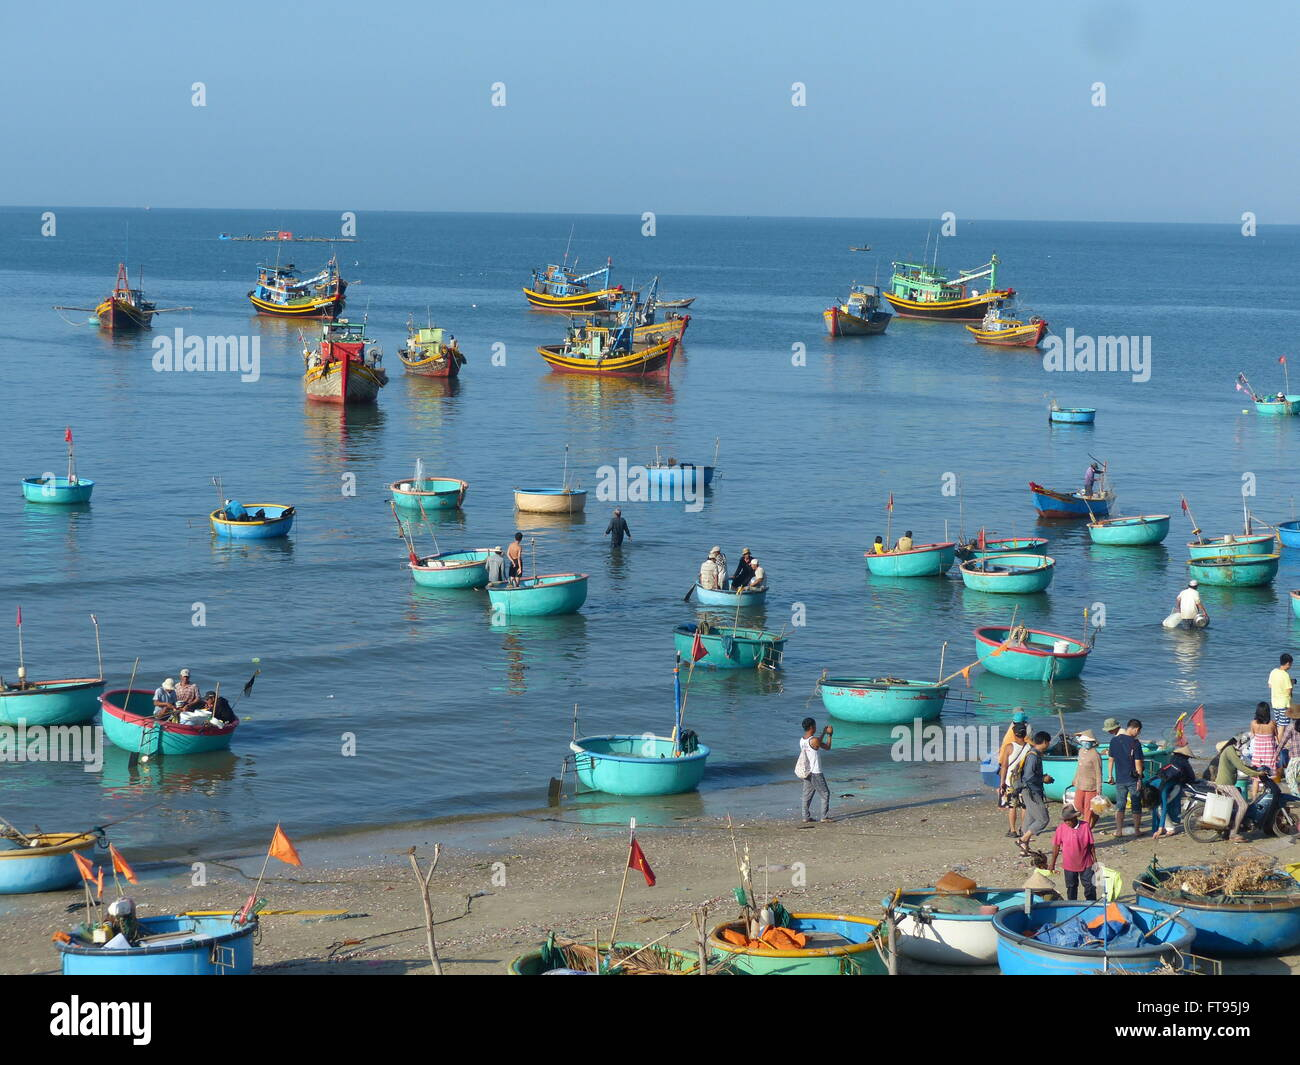 fishing boats in port - Stock Image